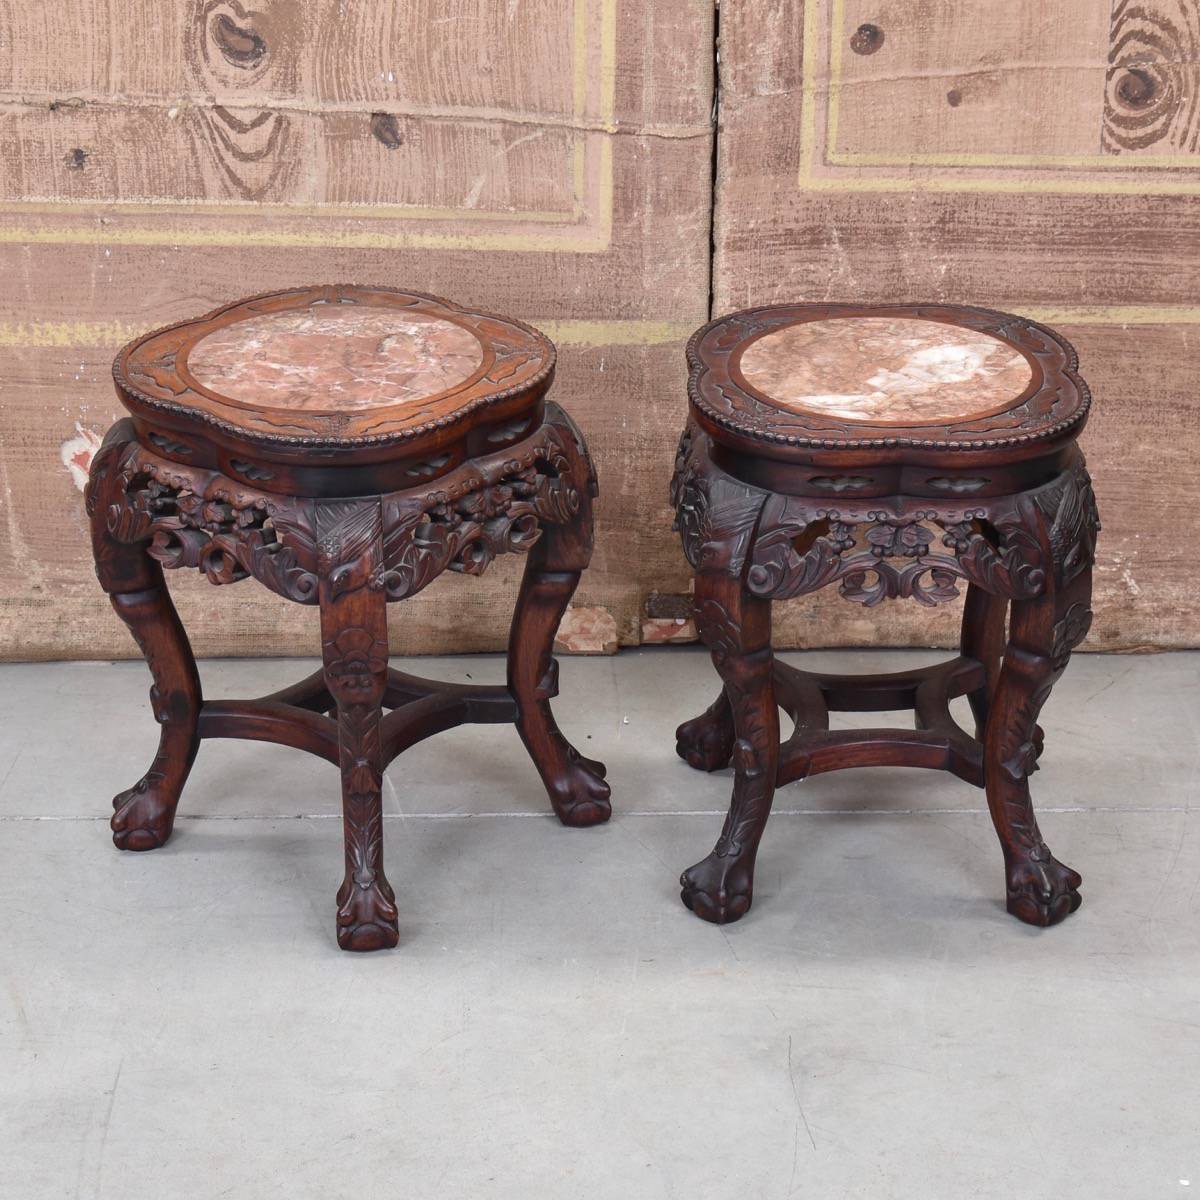 Antique Furniture Belgium Table Pair Degrande1